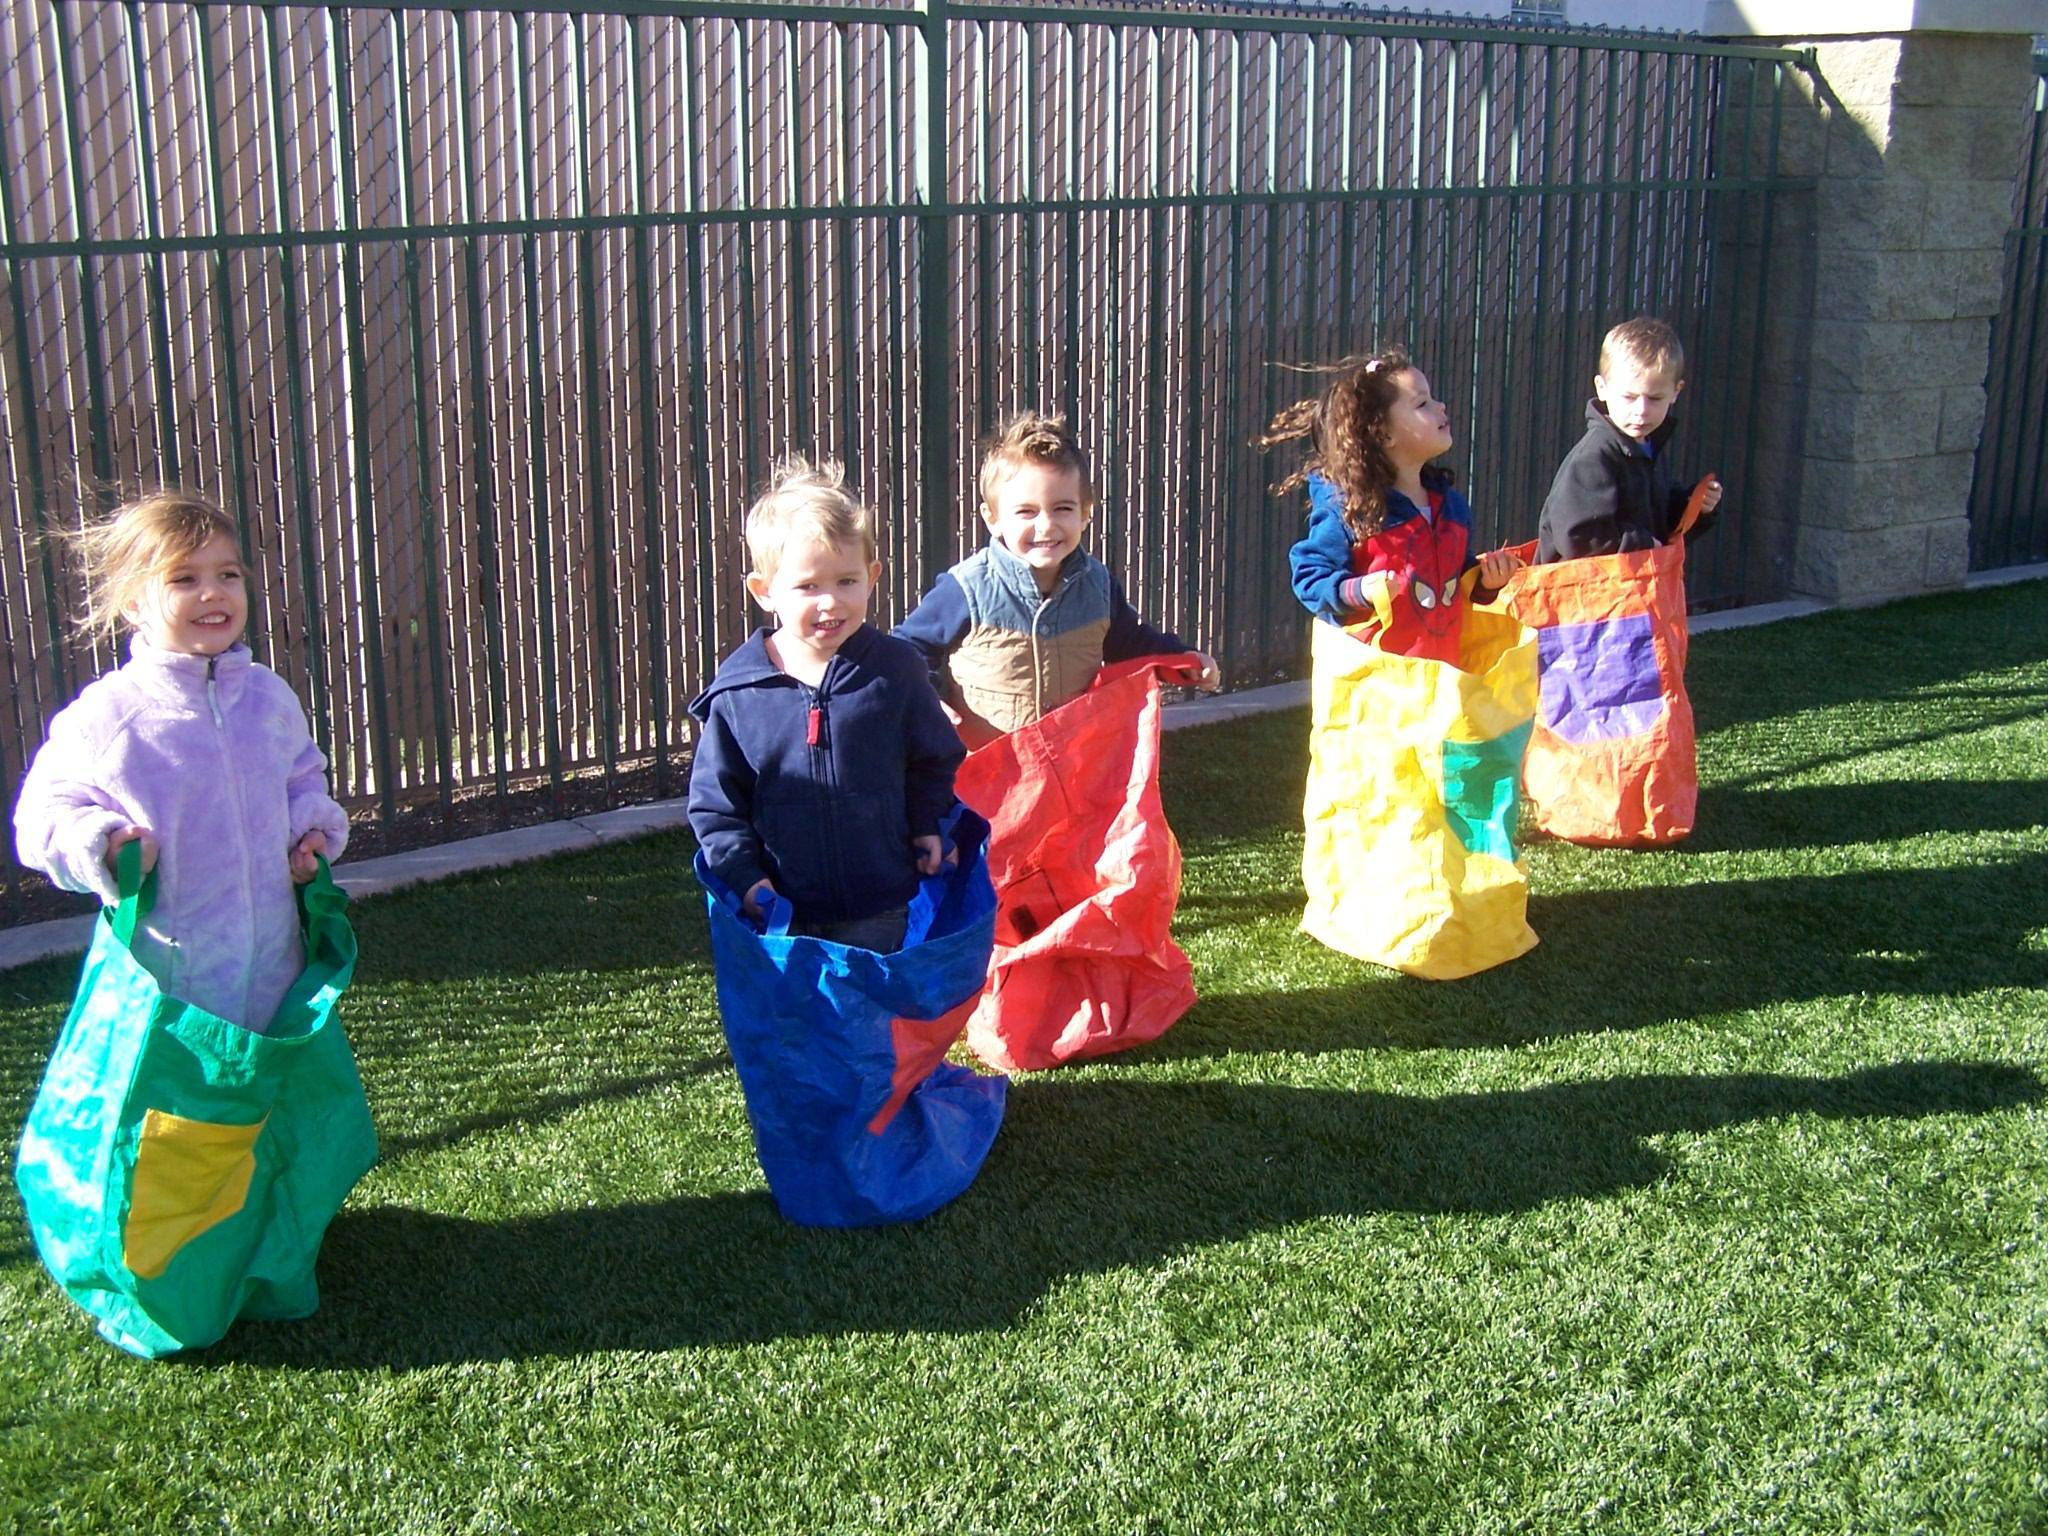 Primrose students getting ready for field day sack race